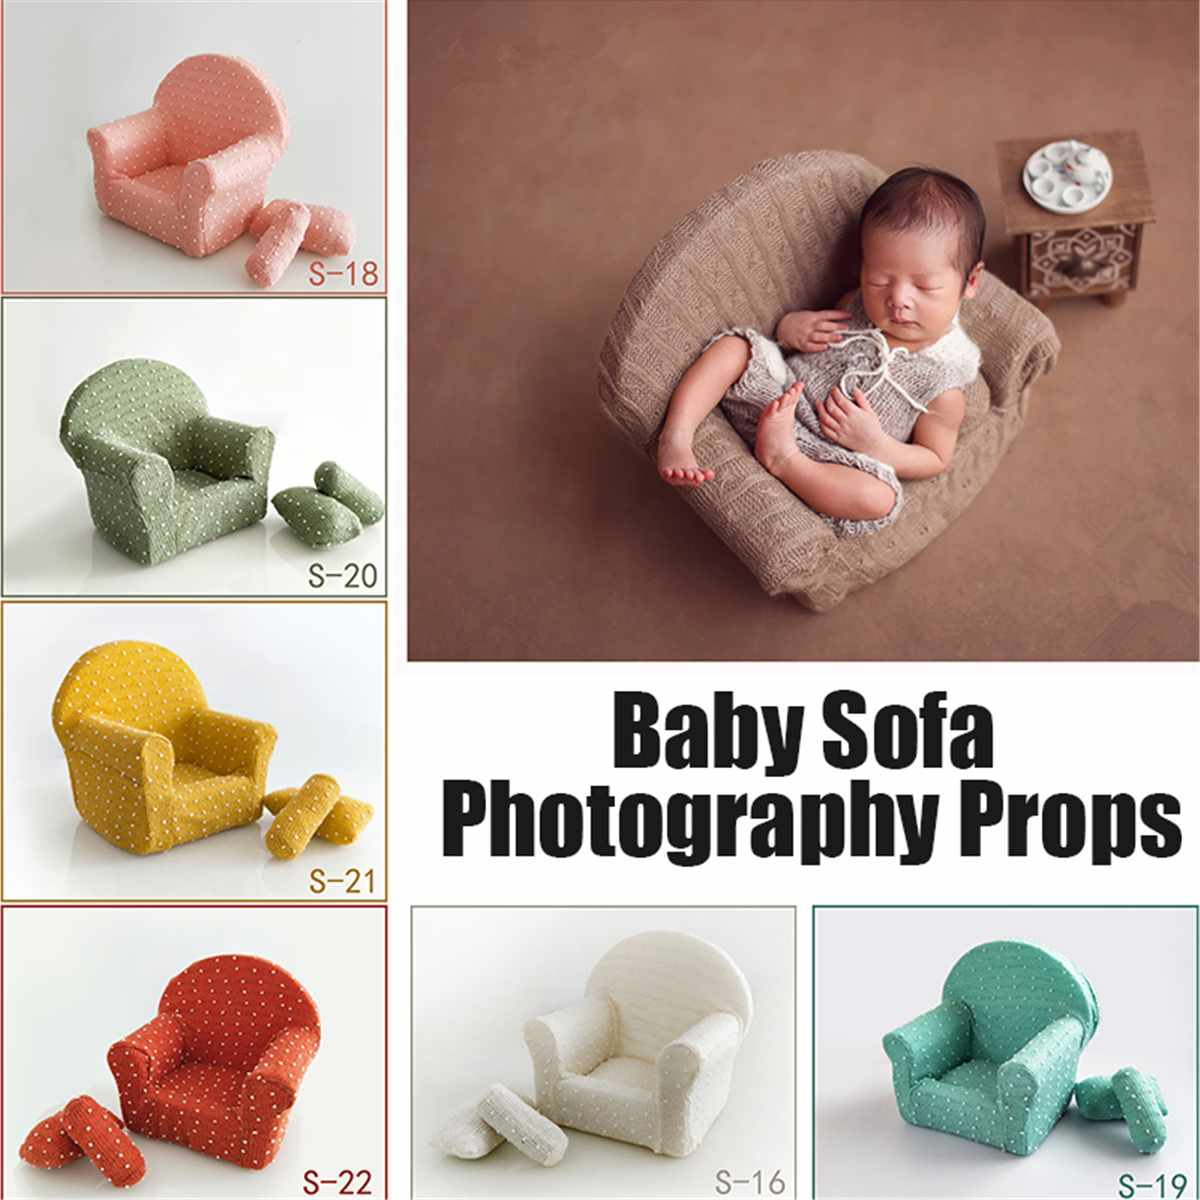 L Size Newborn Baby Photography Props Posing Mini Sofa Chair Decoration Fotografia Accessories Infantil Studio Shooting PropsL Size Newborn Baby Photography Props Posing Mini Sofa Chair Decoration Fotografia Accessories Infantil Studio Shooting Props